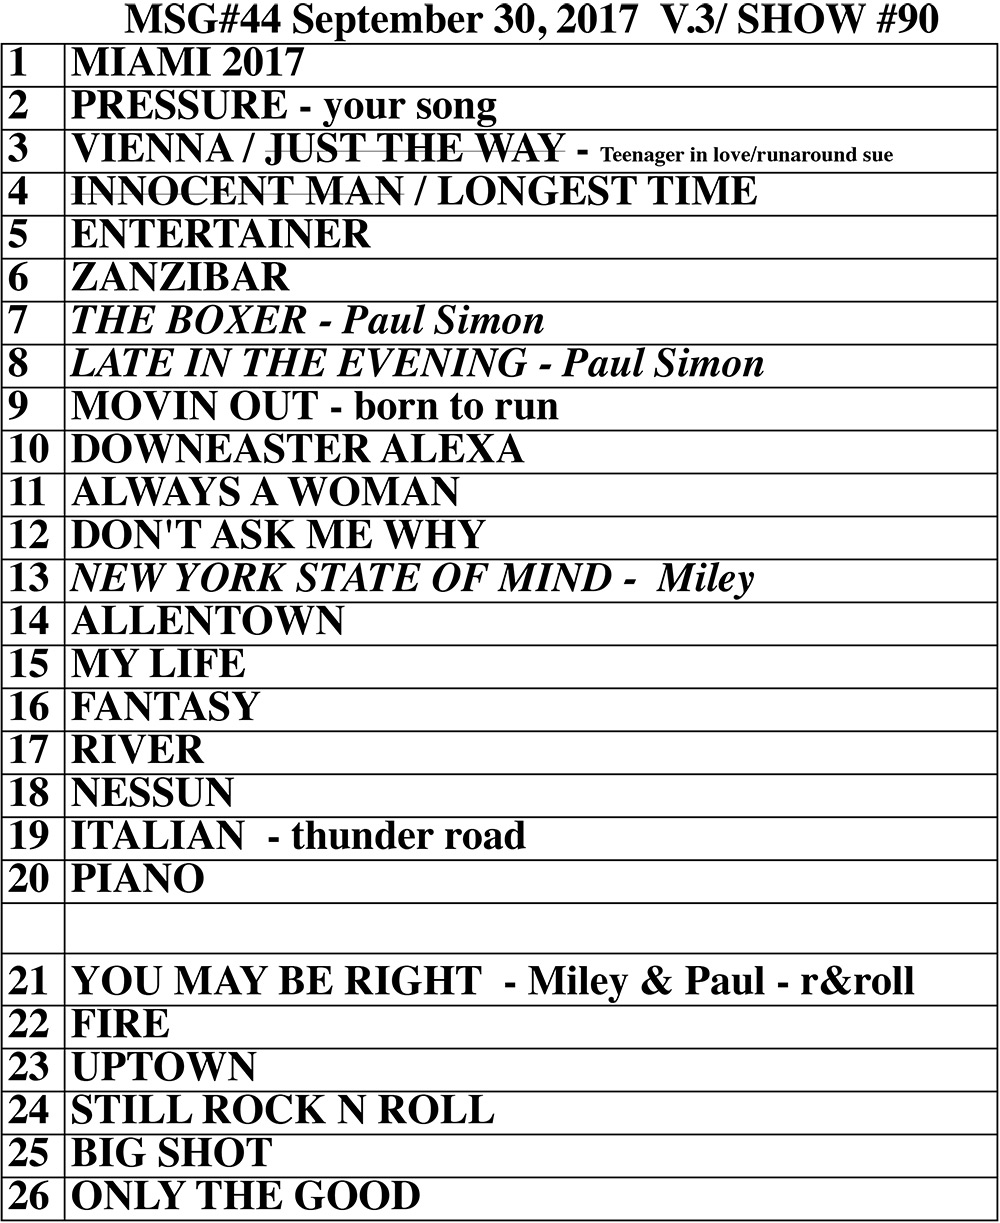 Set list from Billy Joel concert Madison Square Garden New York, NY, September 30, 2017